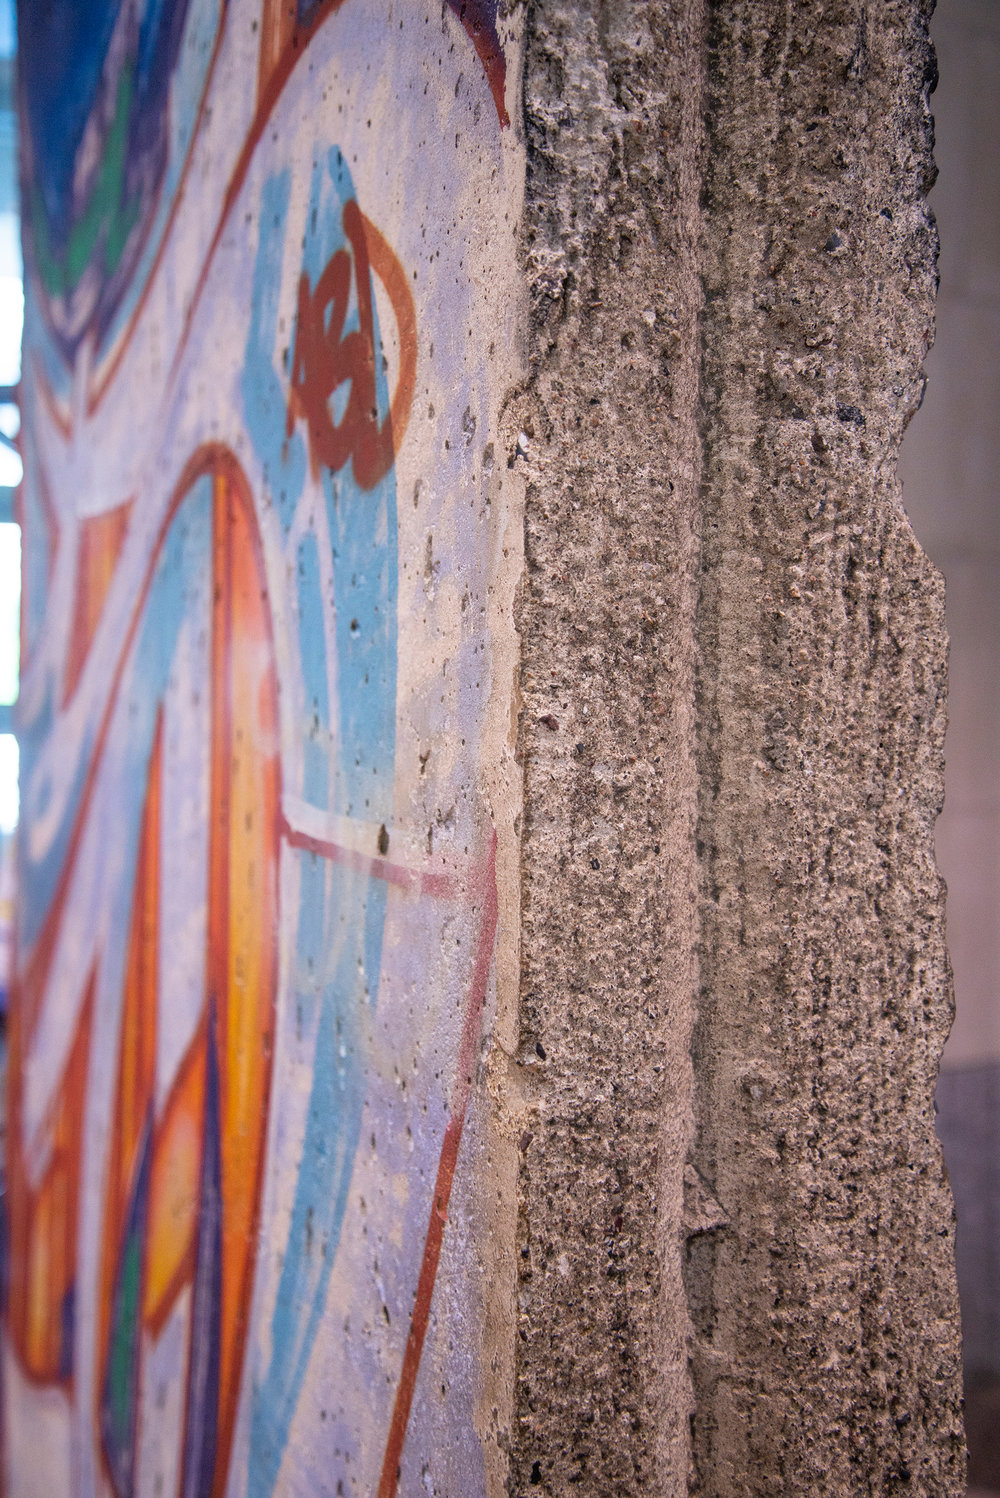 Guide to Washington DC: Berlin Wall in Regan Building Detail